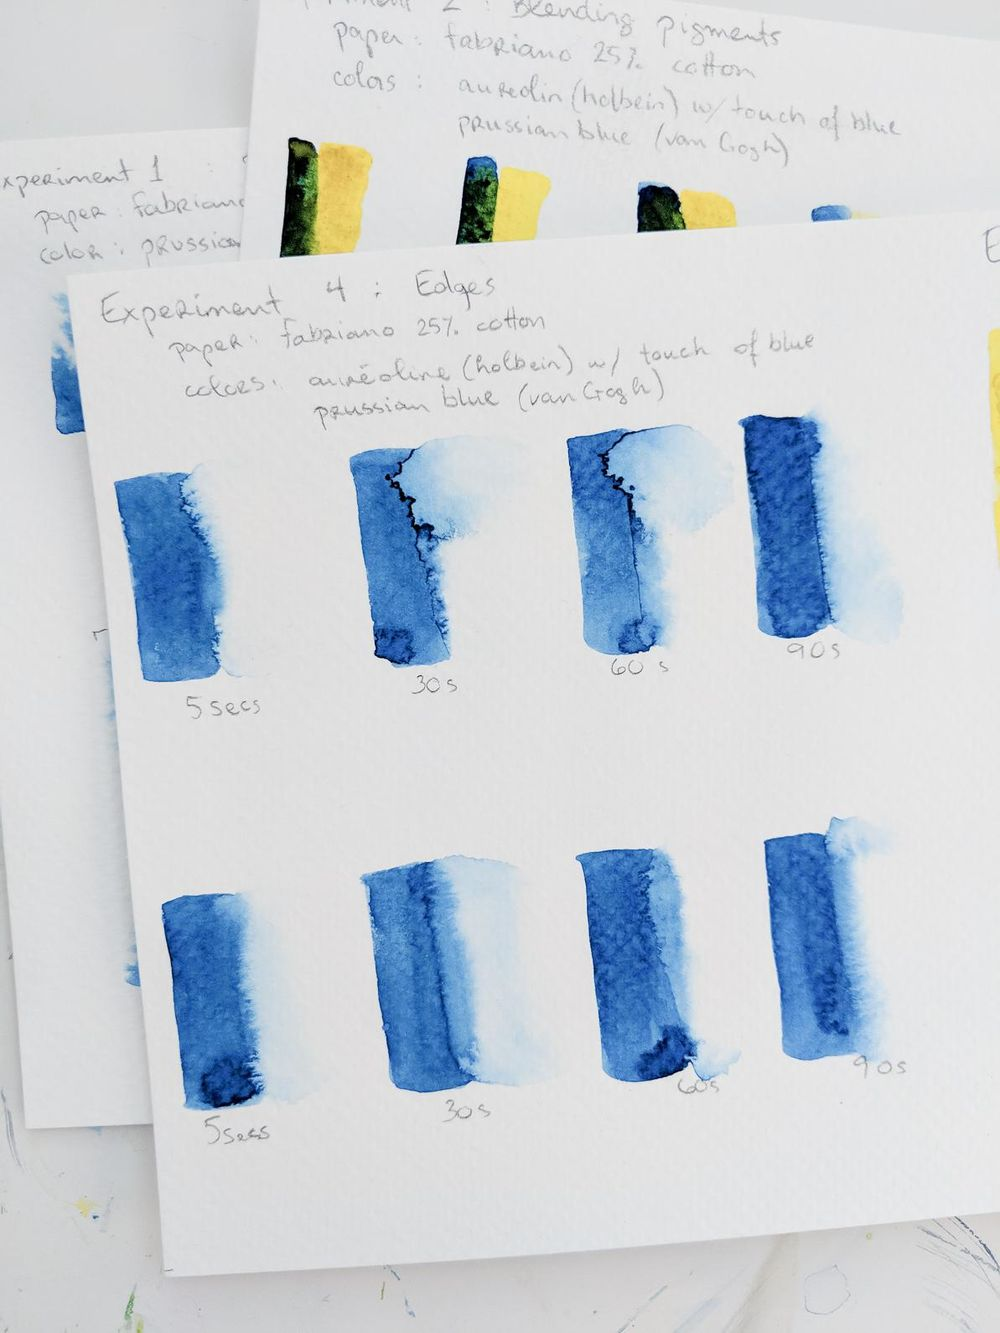 Experiments in watercolors with Ohn Mar Win - image 5 - student project